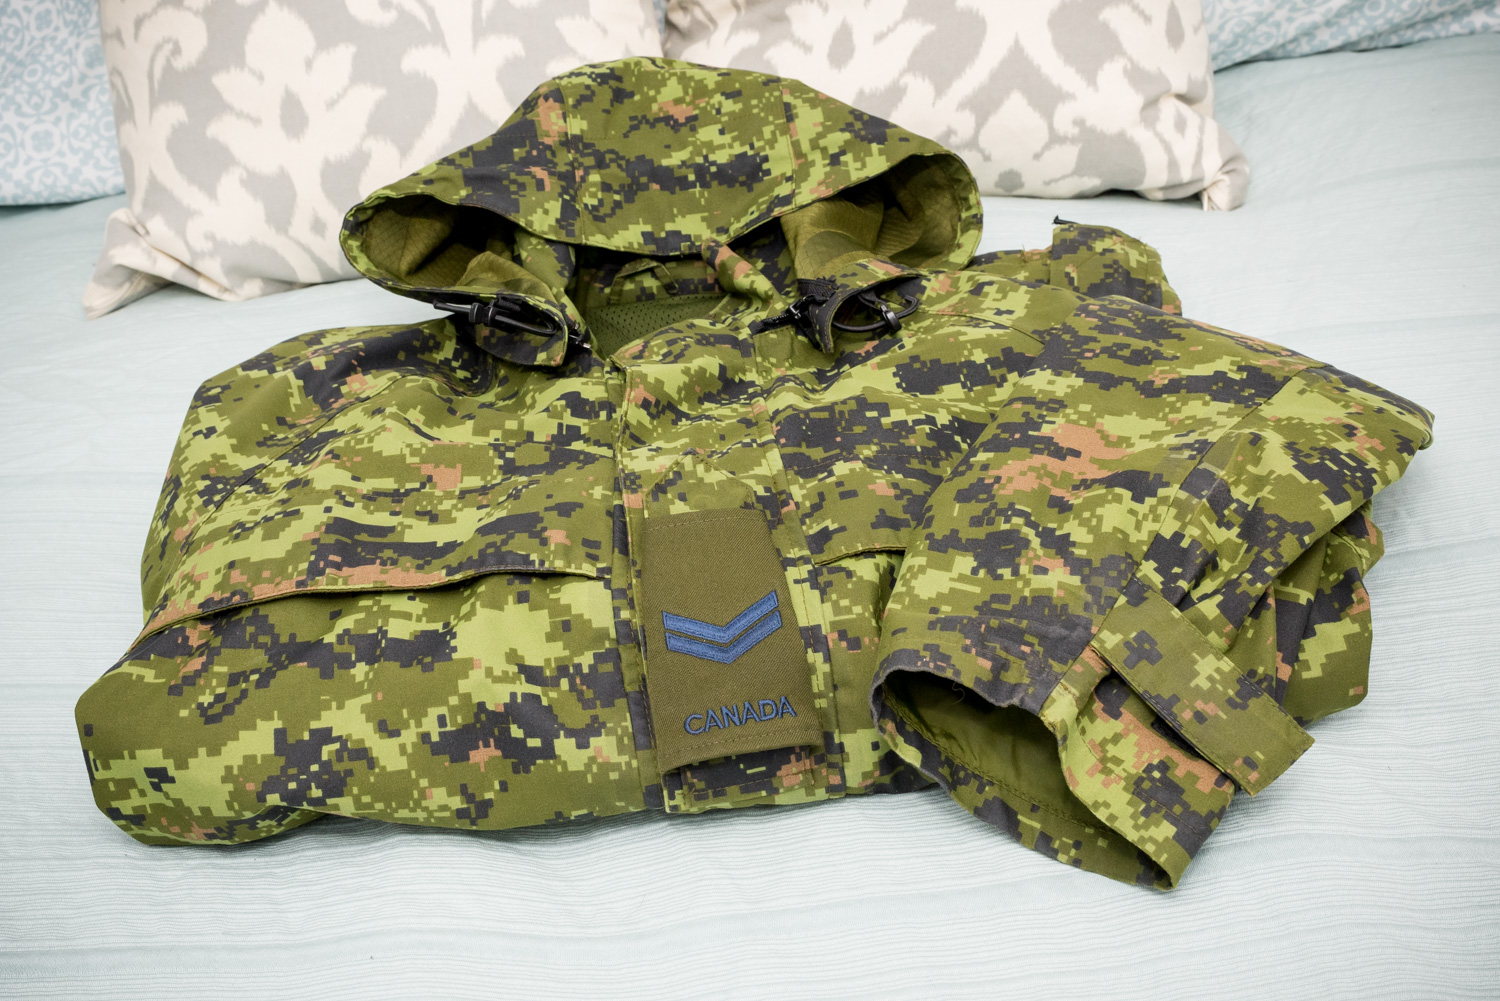 Canadian Forces Air Force rain jacket.